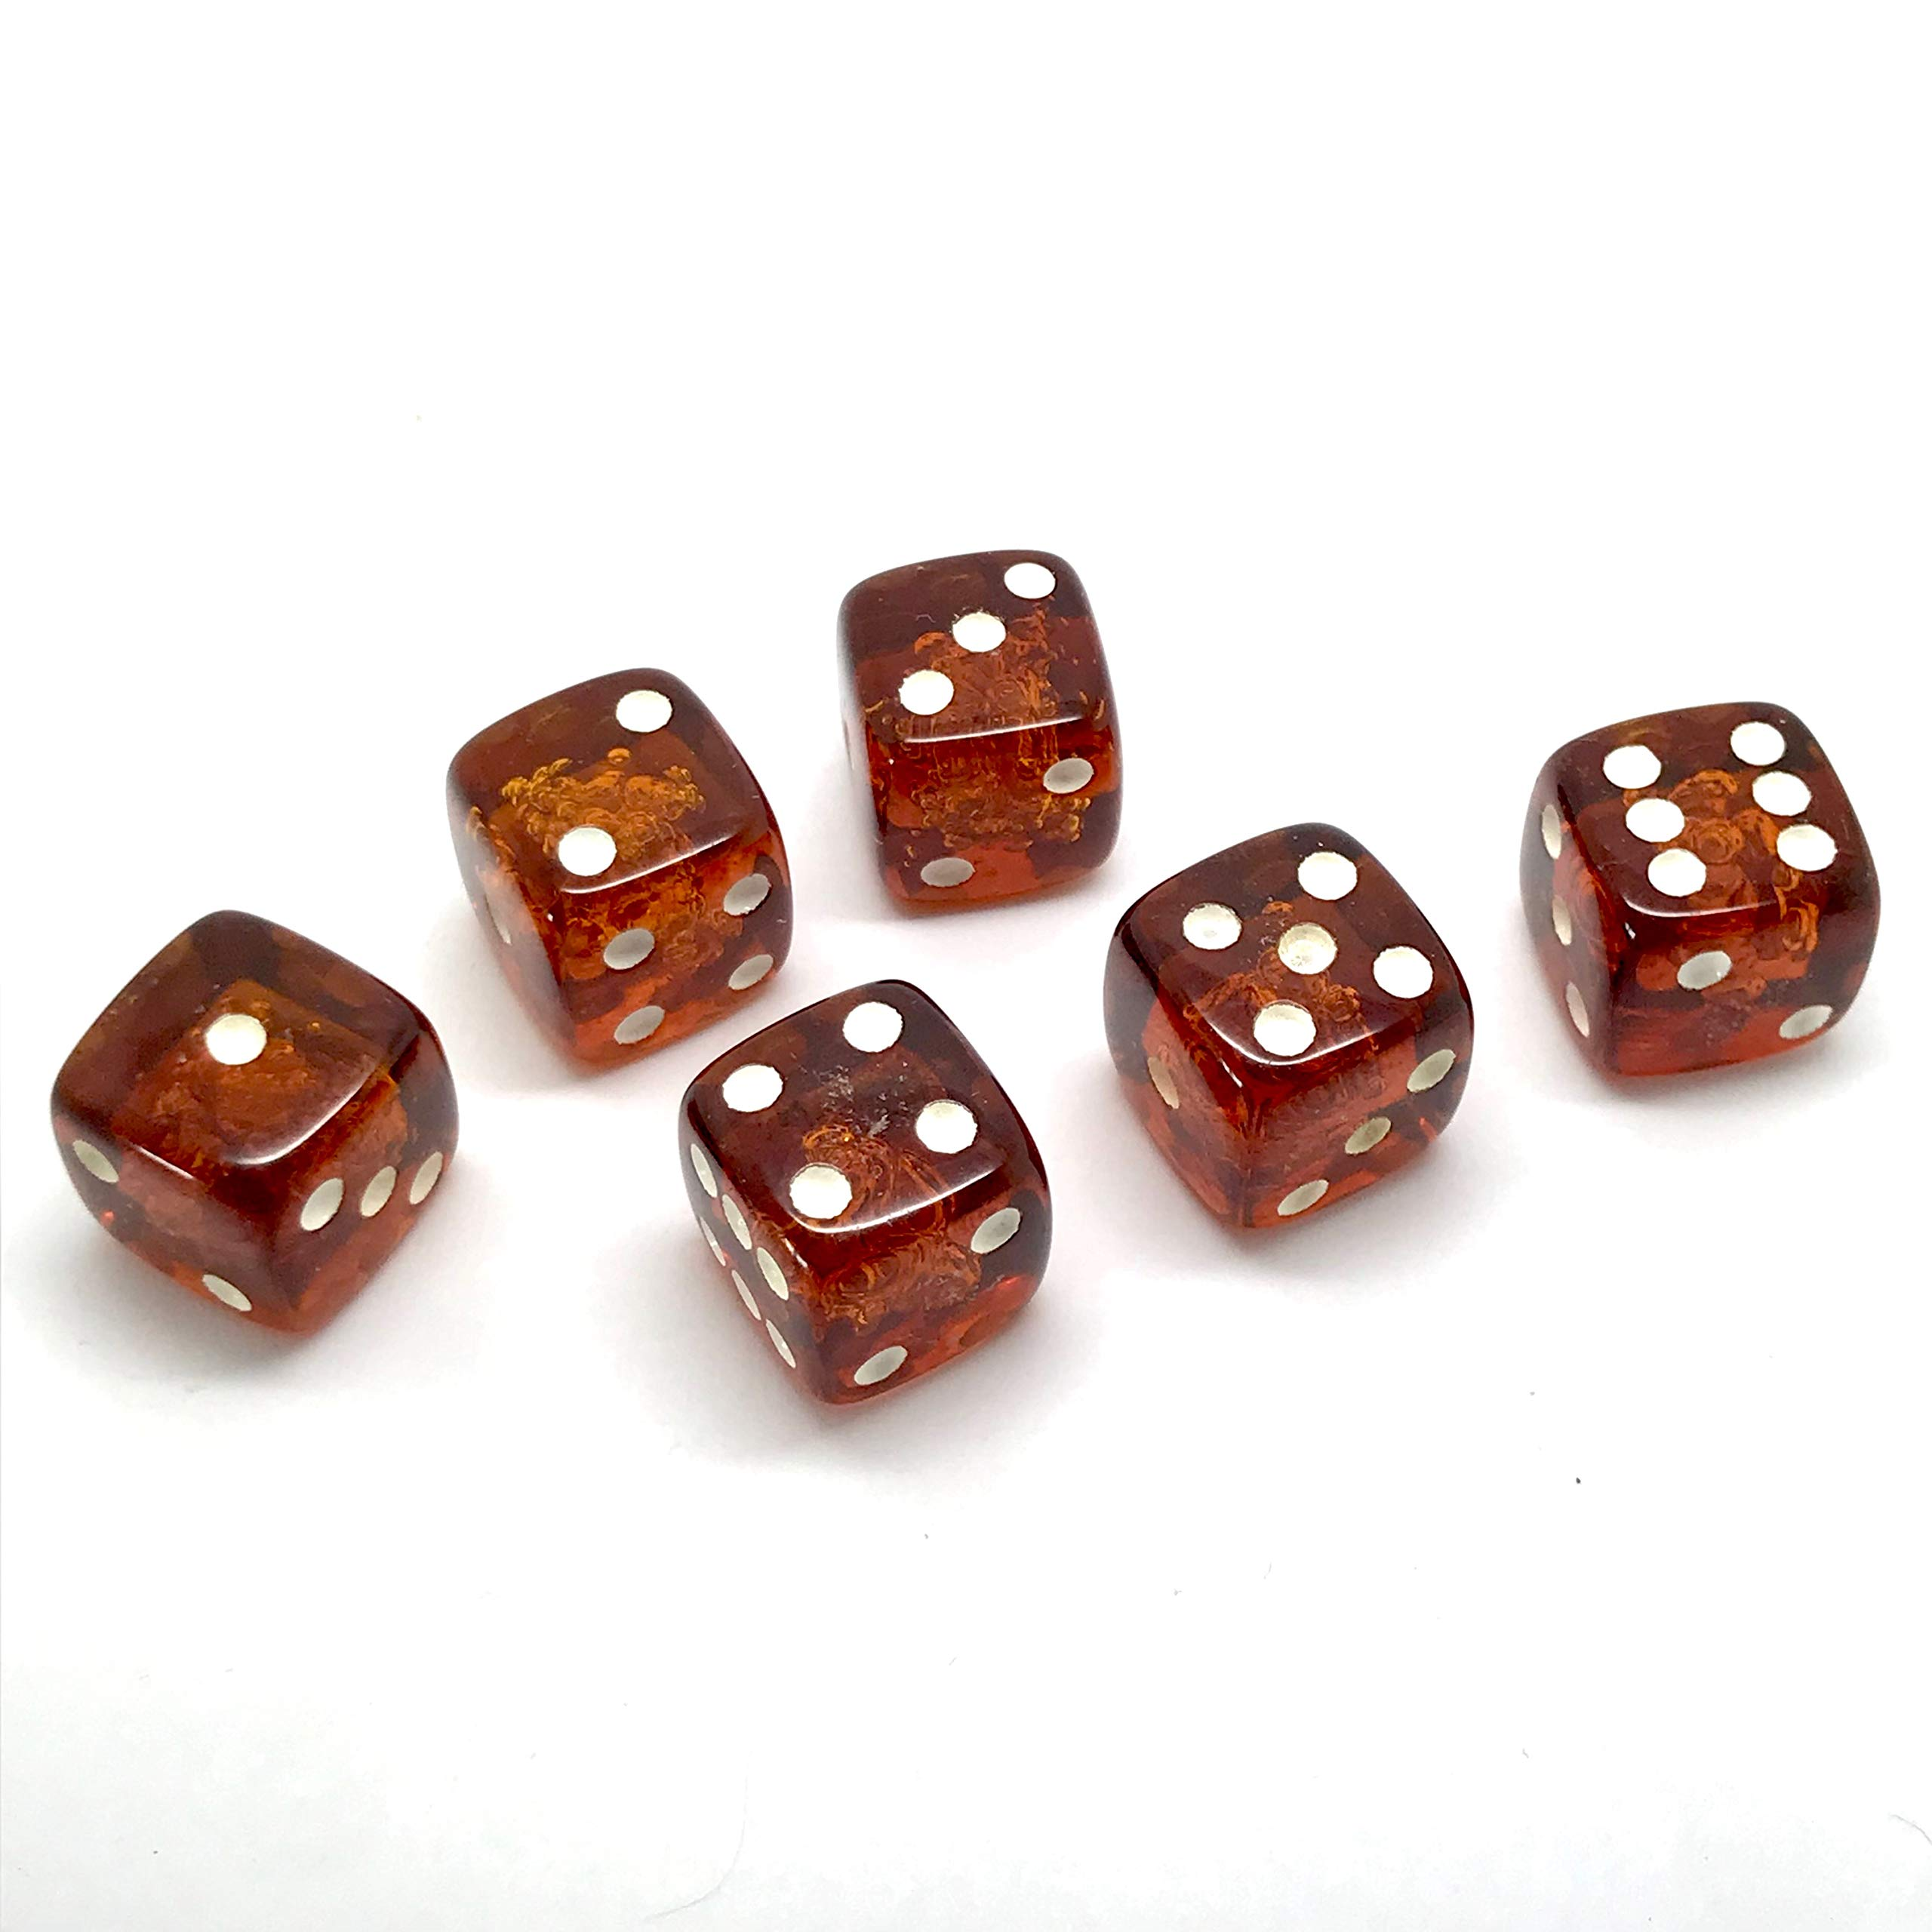 x6 Proper size Amber Dice set for Board games and Gambling by Generic (Image #7)